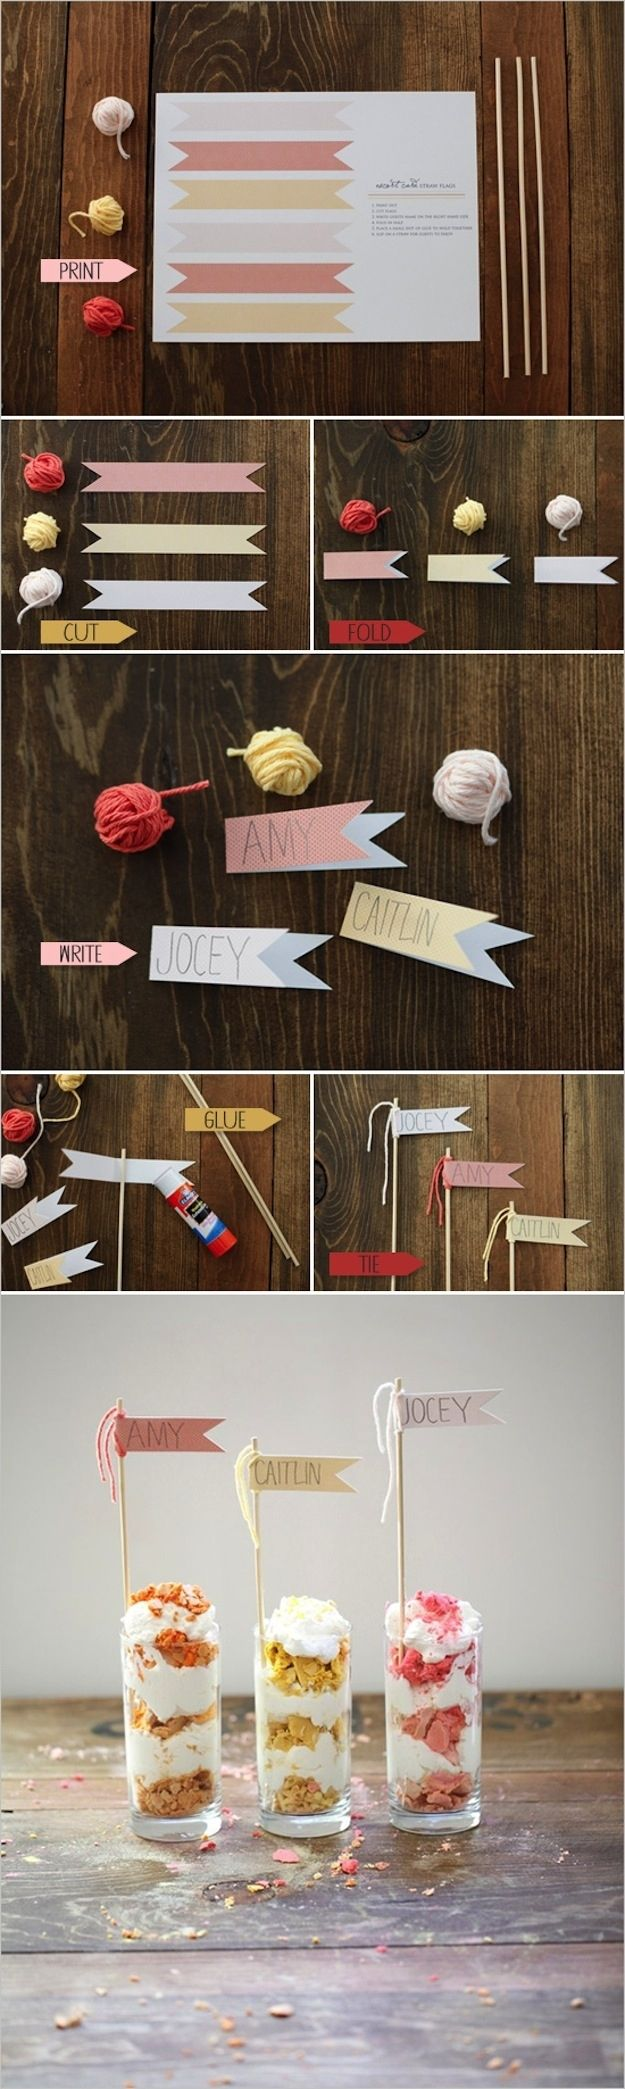 Straw Flag Place Cards | 35 Cute And Clever Ideas For Place Cards